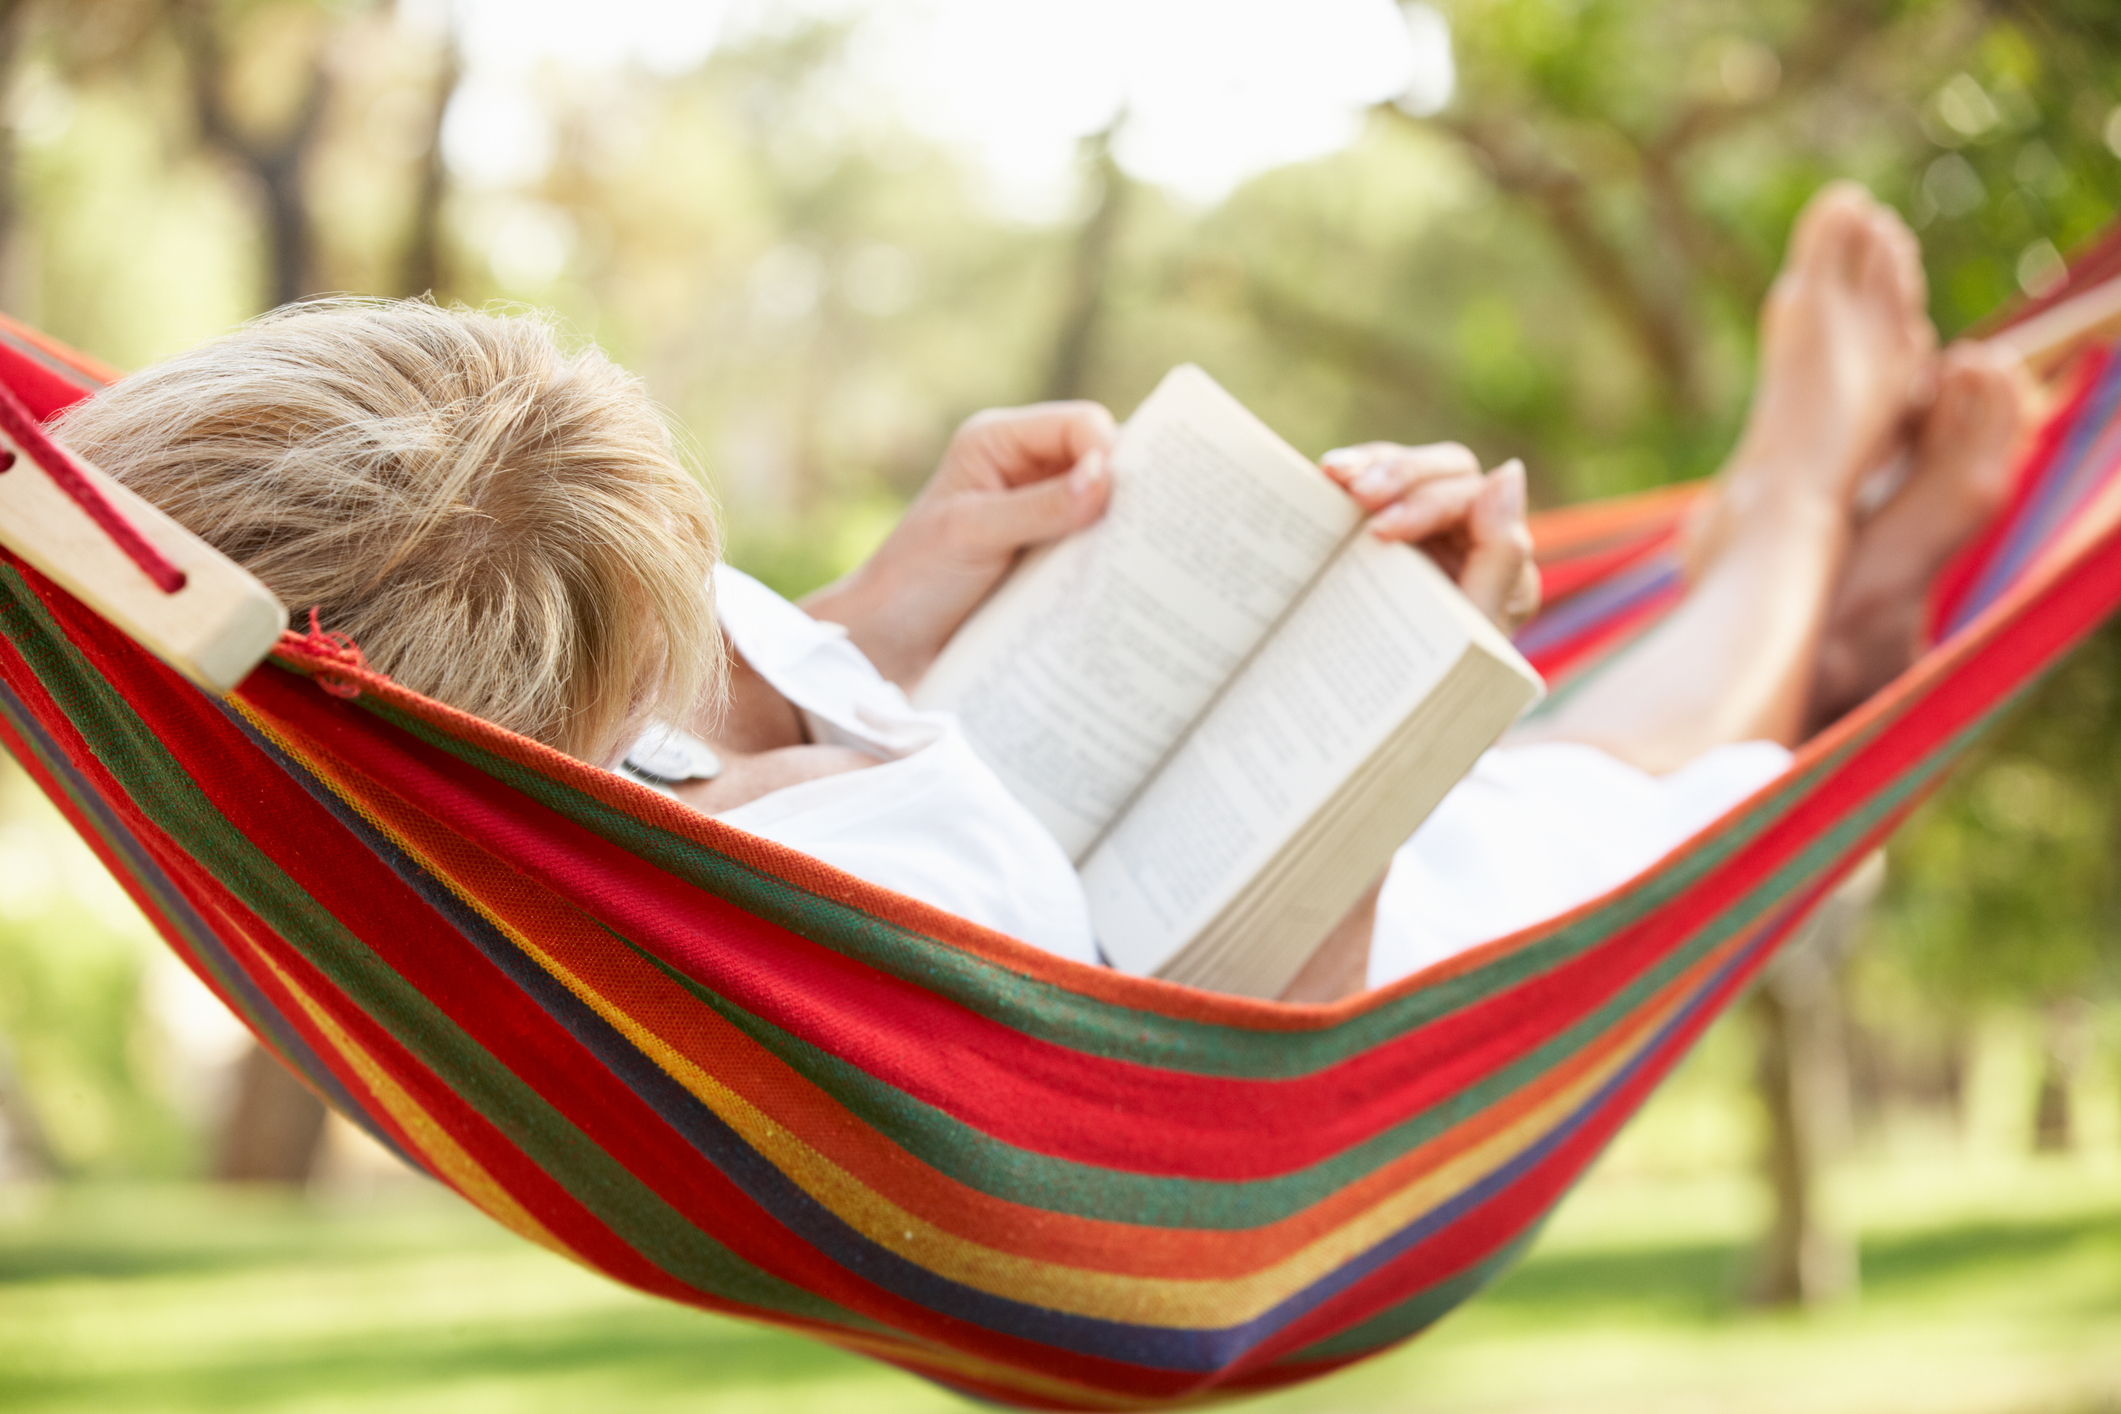 10 Books to Read When You Can't Travel